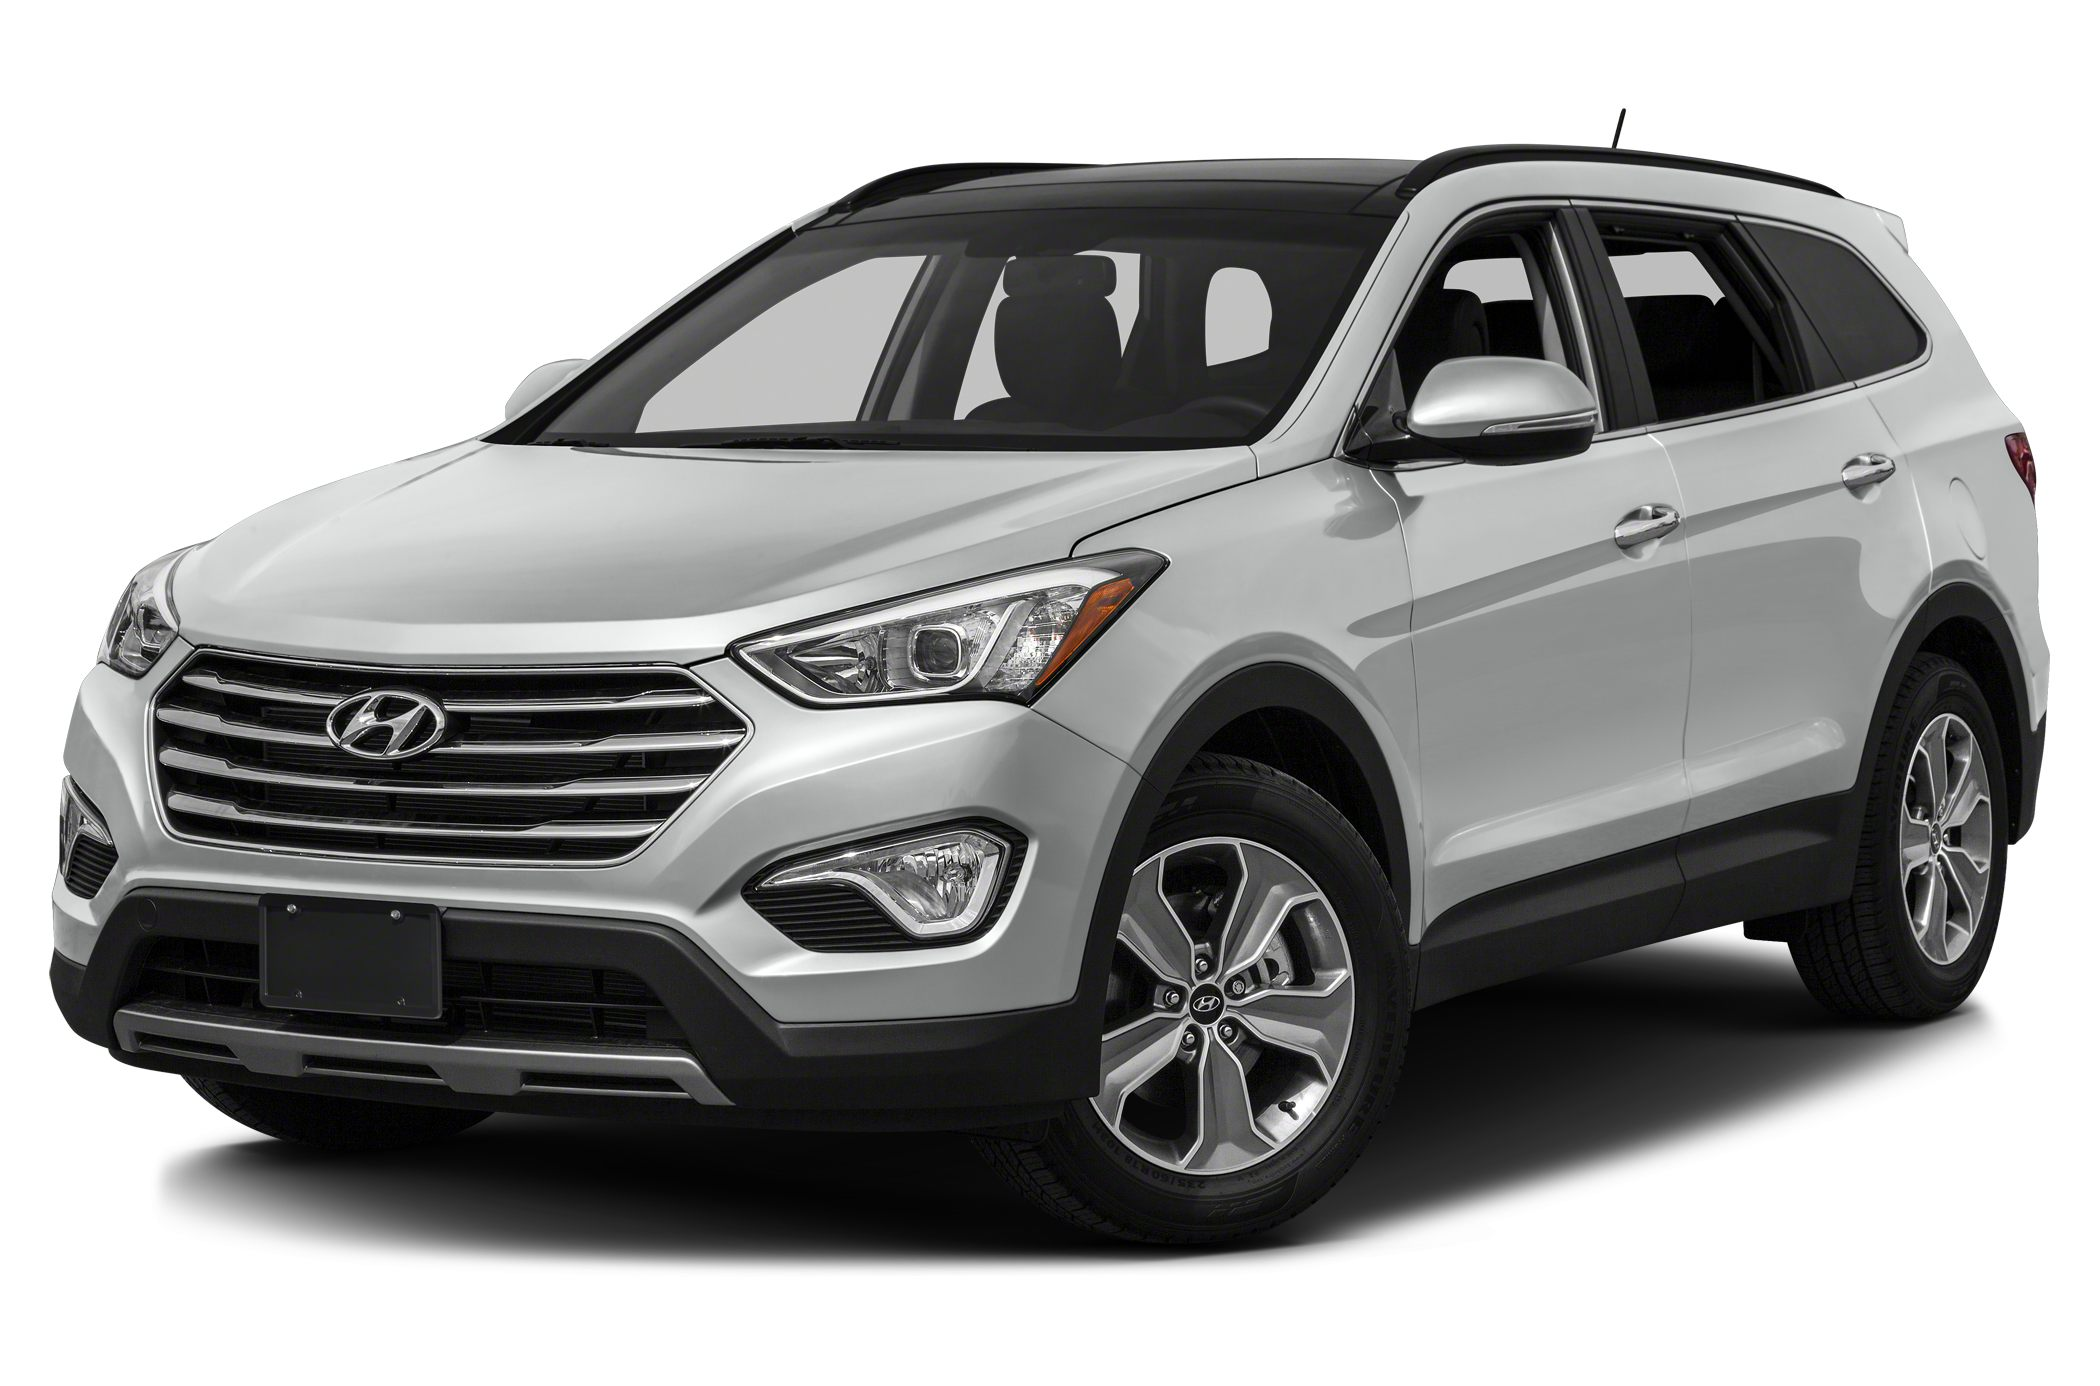 2015 Hyundai Santa Fe GLS SUV for sale in Jefferson City for $39,495 with 2 miles